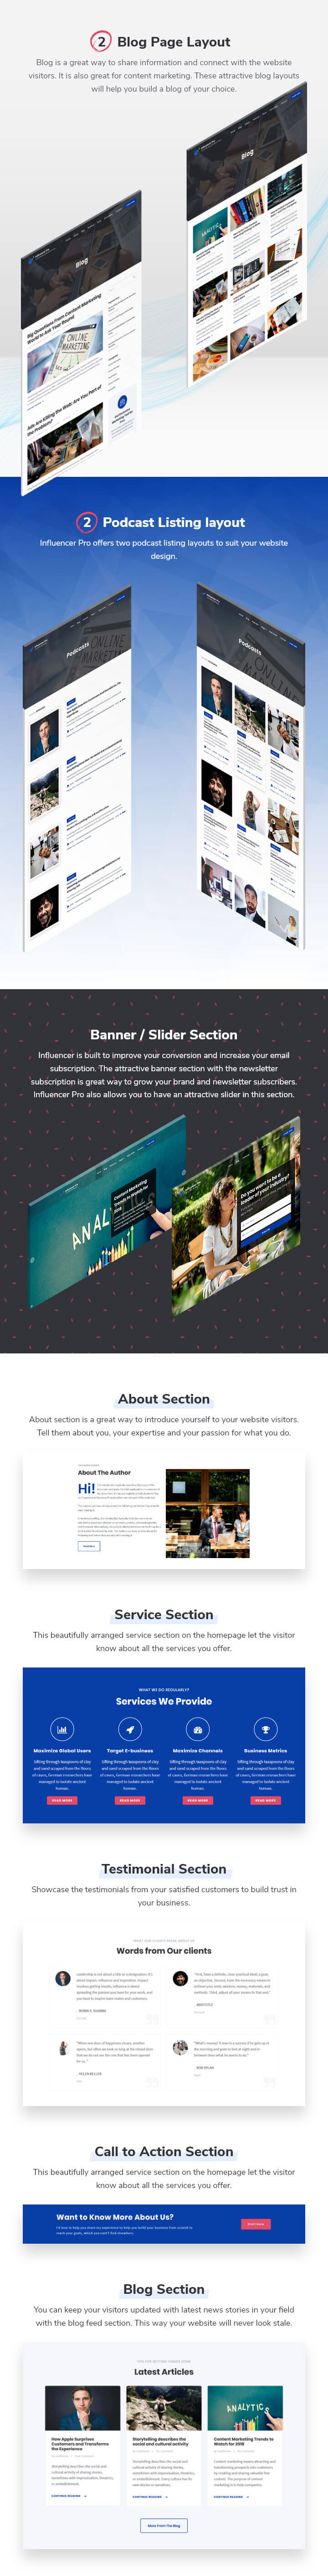 features of Influencer WordPress Theme